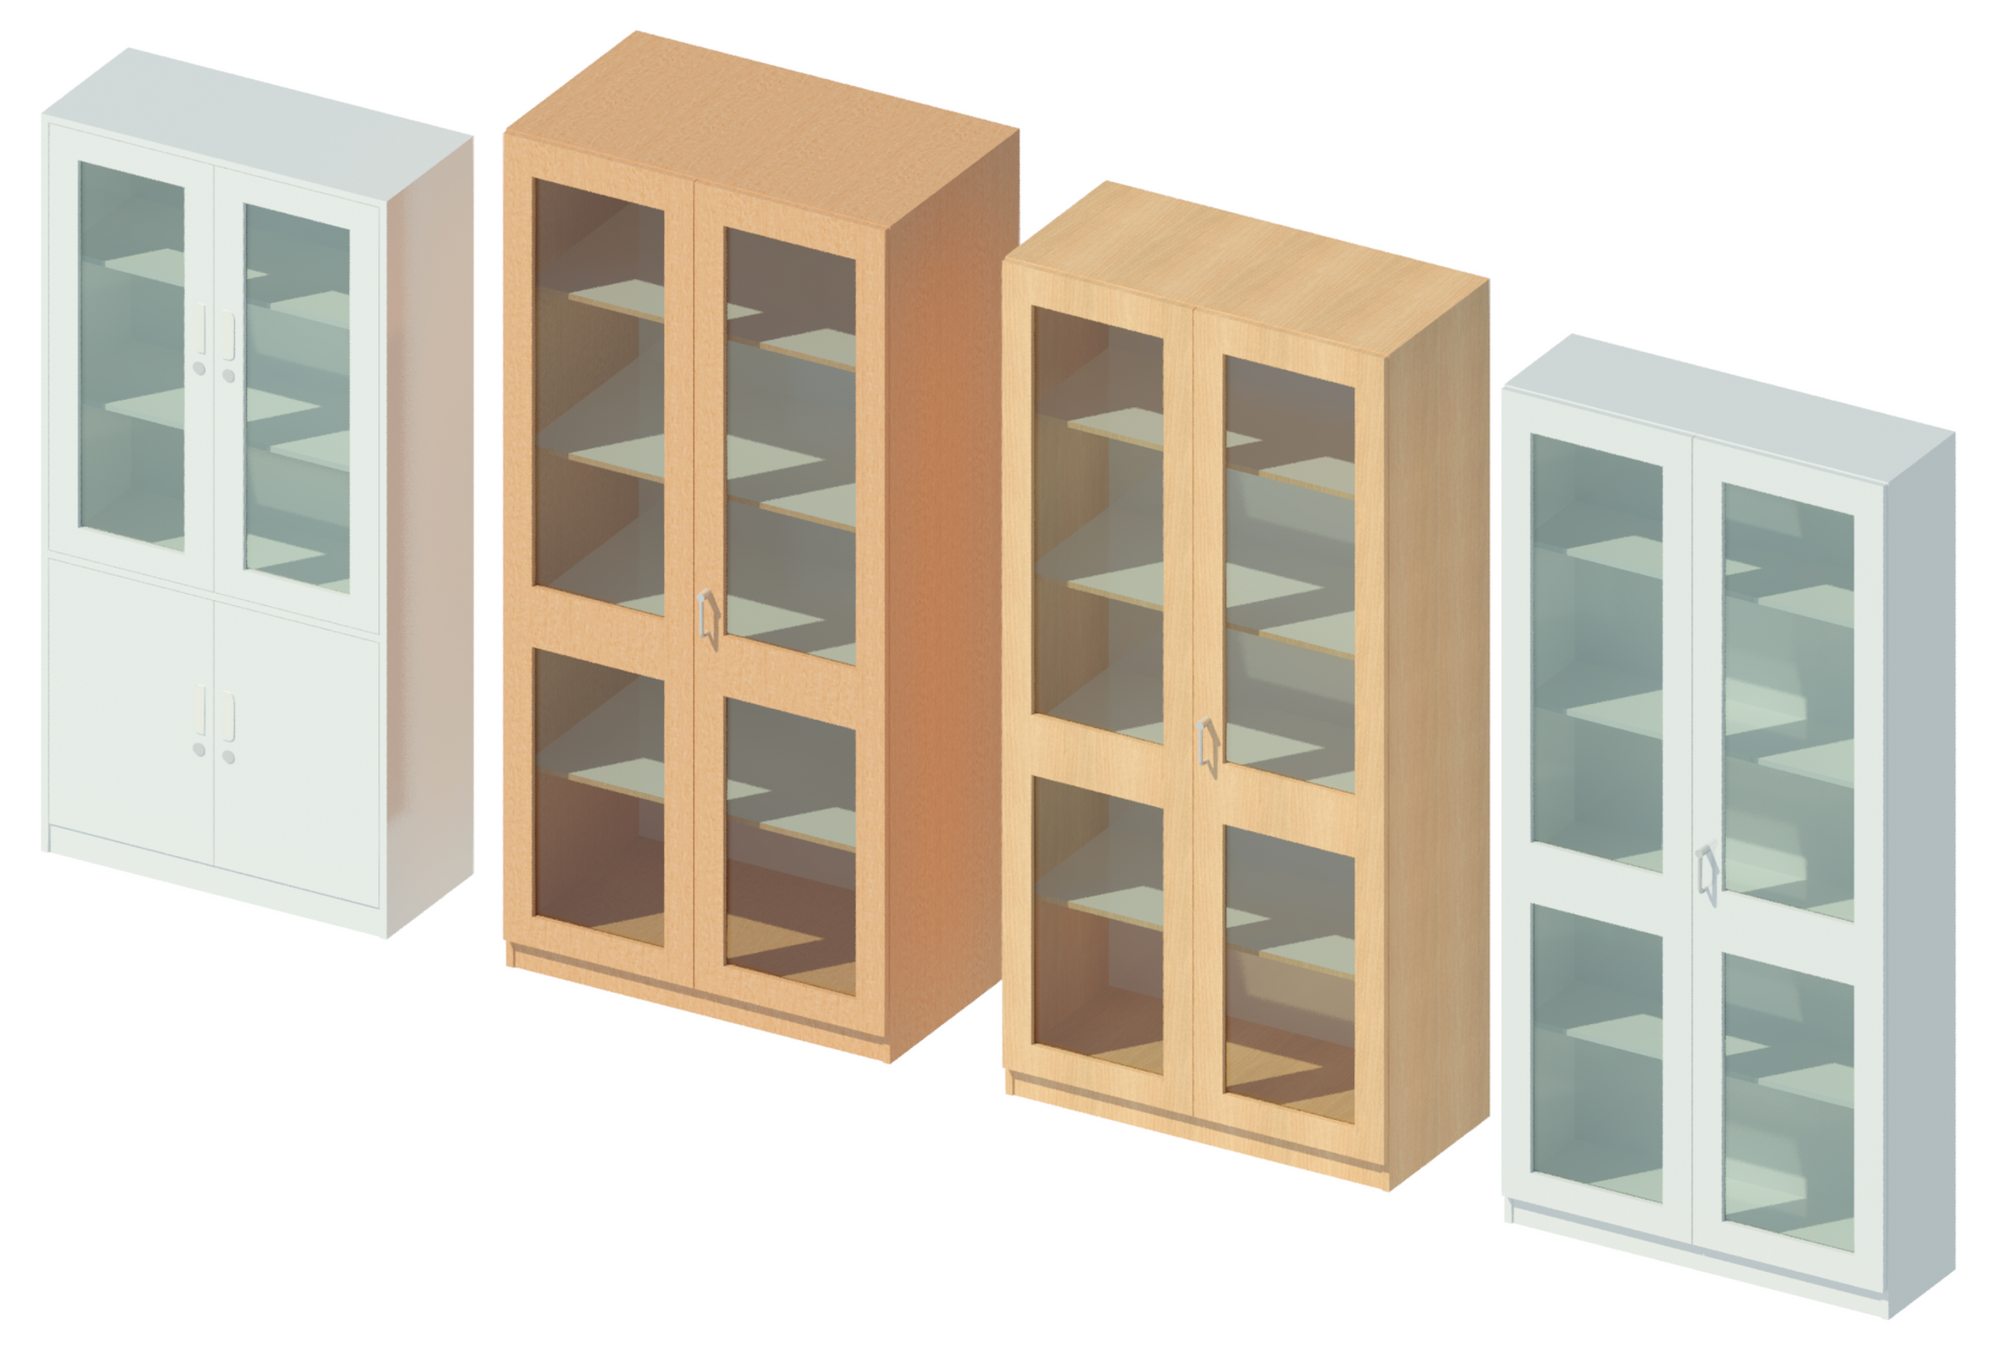 3D rendering showing storage cabinets.